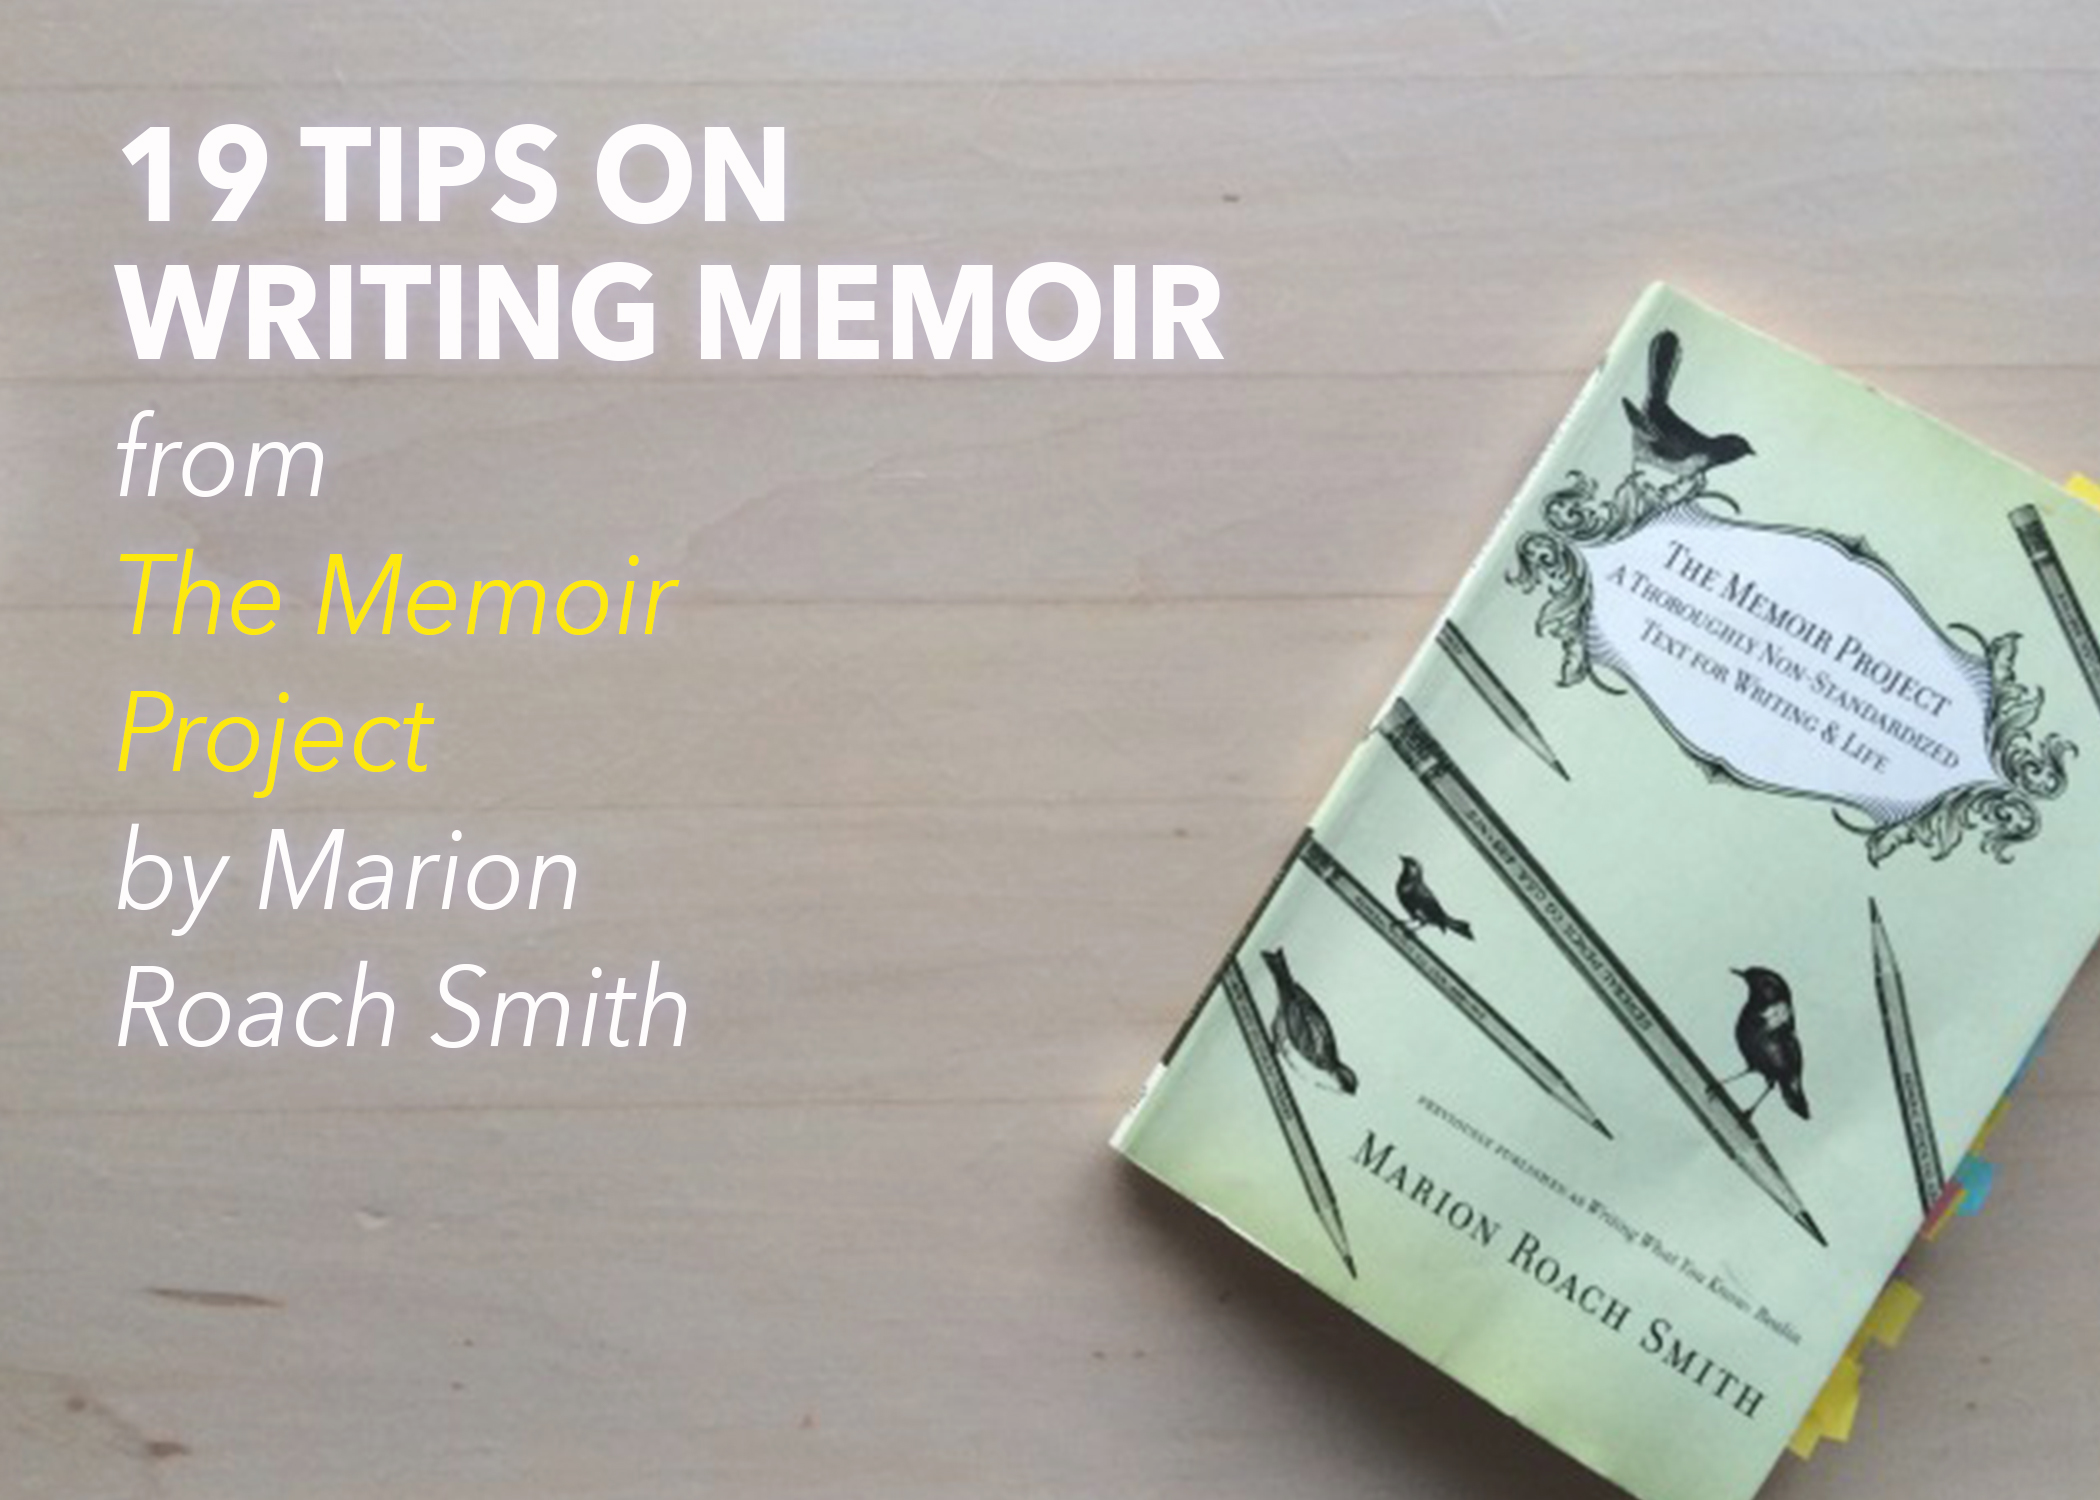 Apa Format For Essay Paper  Tips On Writing Memoir From The Memoir Project By Marion Roach Smith   The Write Practice Who Can Write An Annotated Bibliography For Me also Do My Assignment University  Tips On Writing Memoir From The Memoir Project By Marion Roach  San Antonio Business Plan Writers